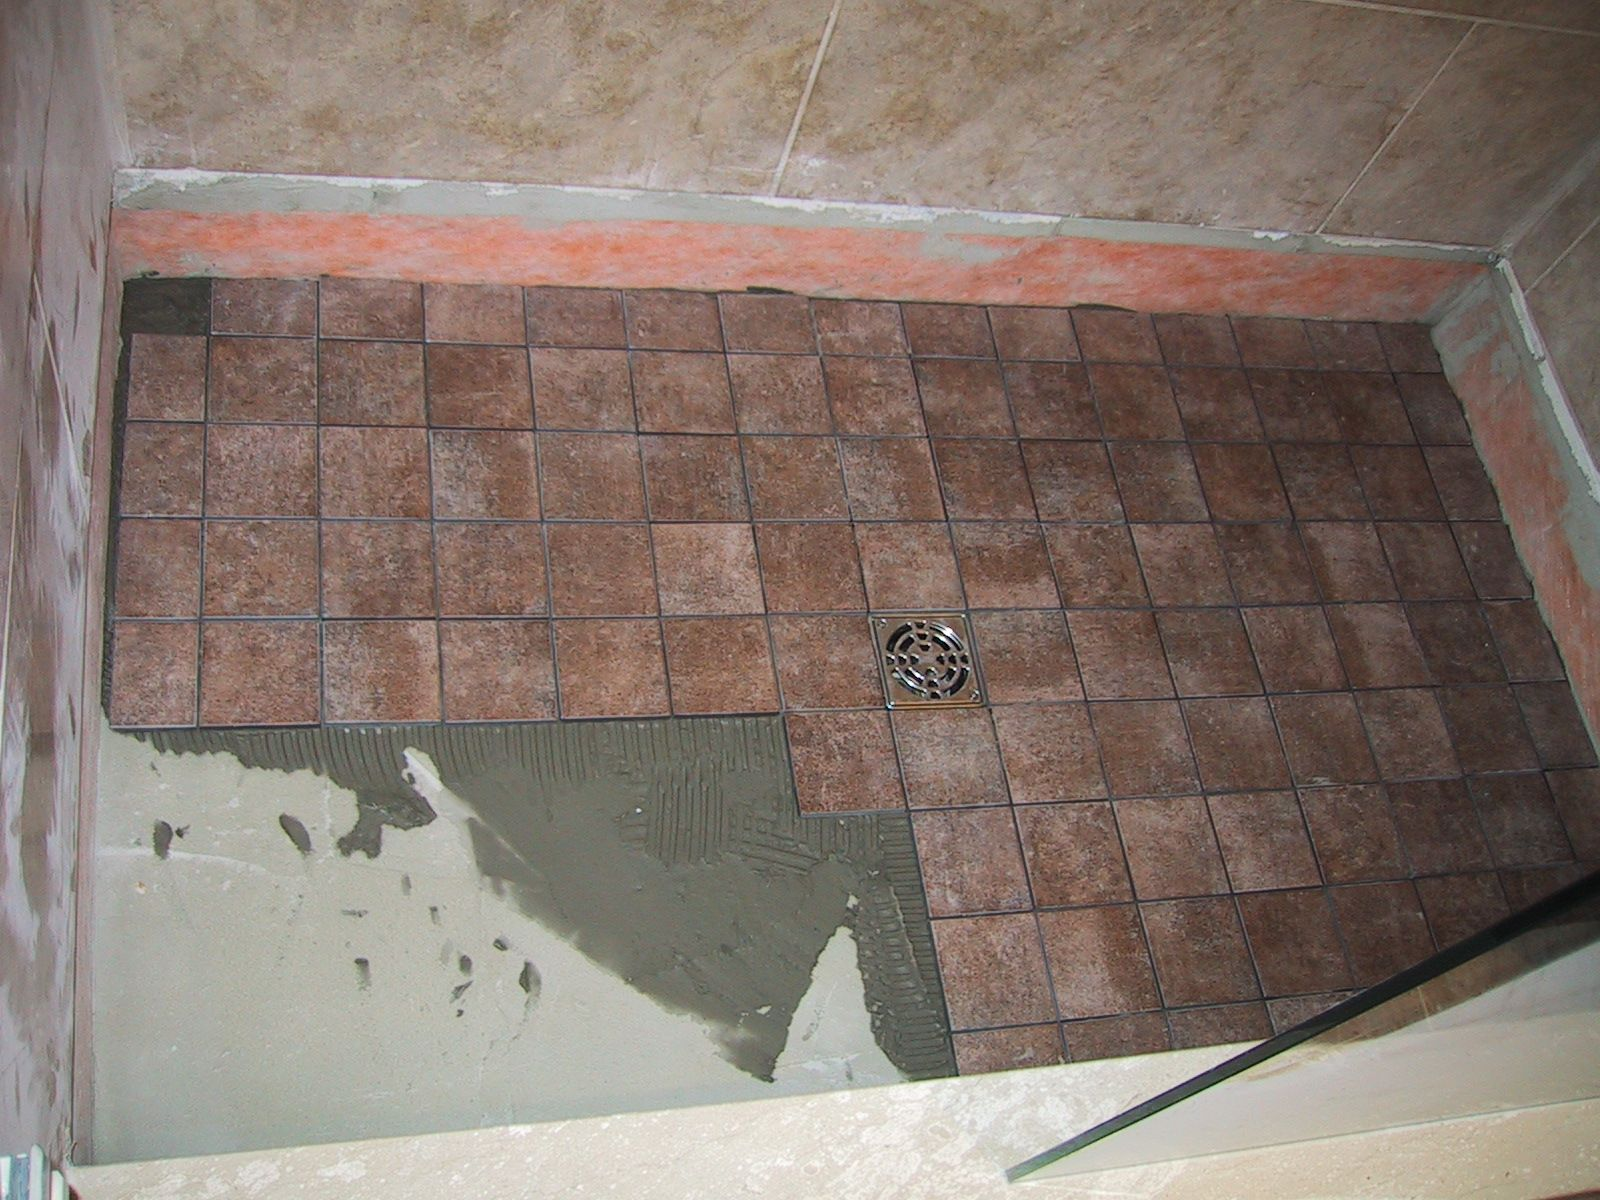 Build The Shower Floor First Including The Floor Tile and then